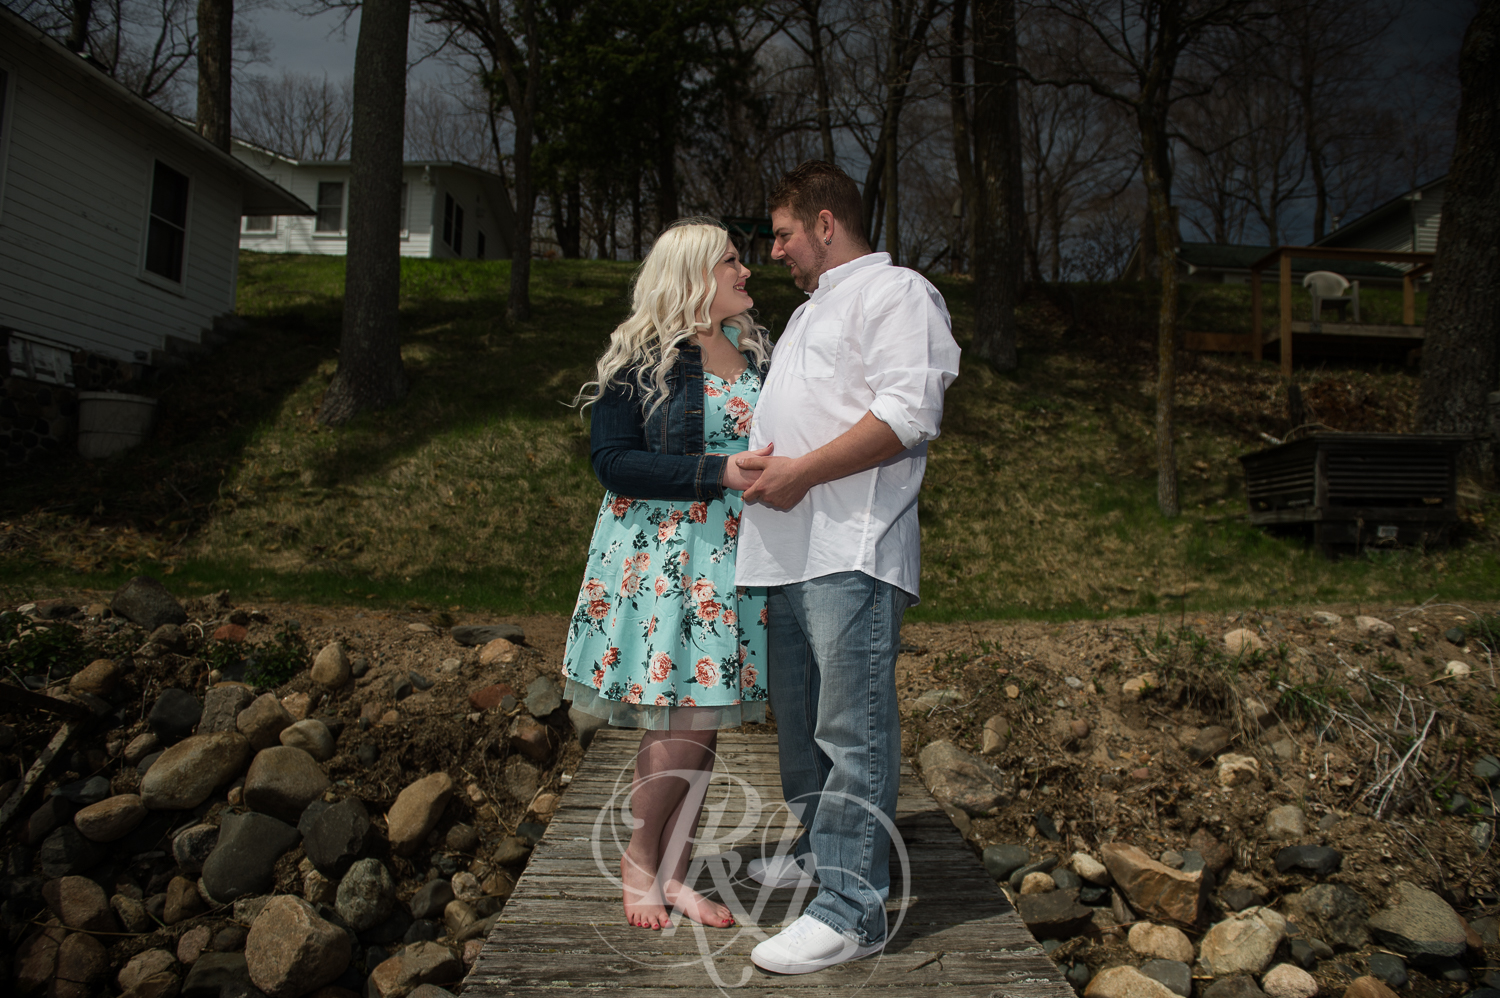 Erica & Shawn - Minnesota Engagement Photography - RKH Images -2.jpg